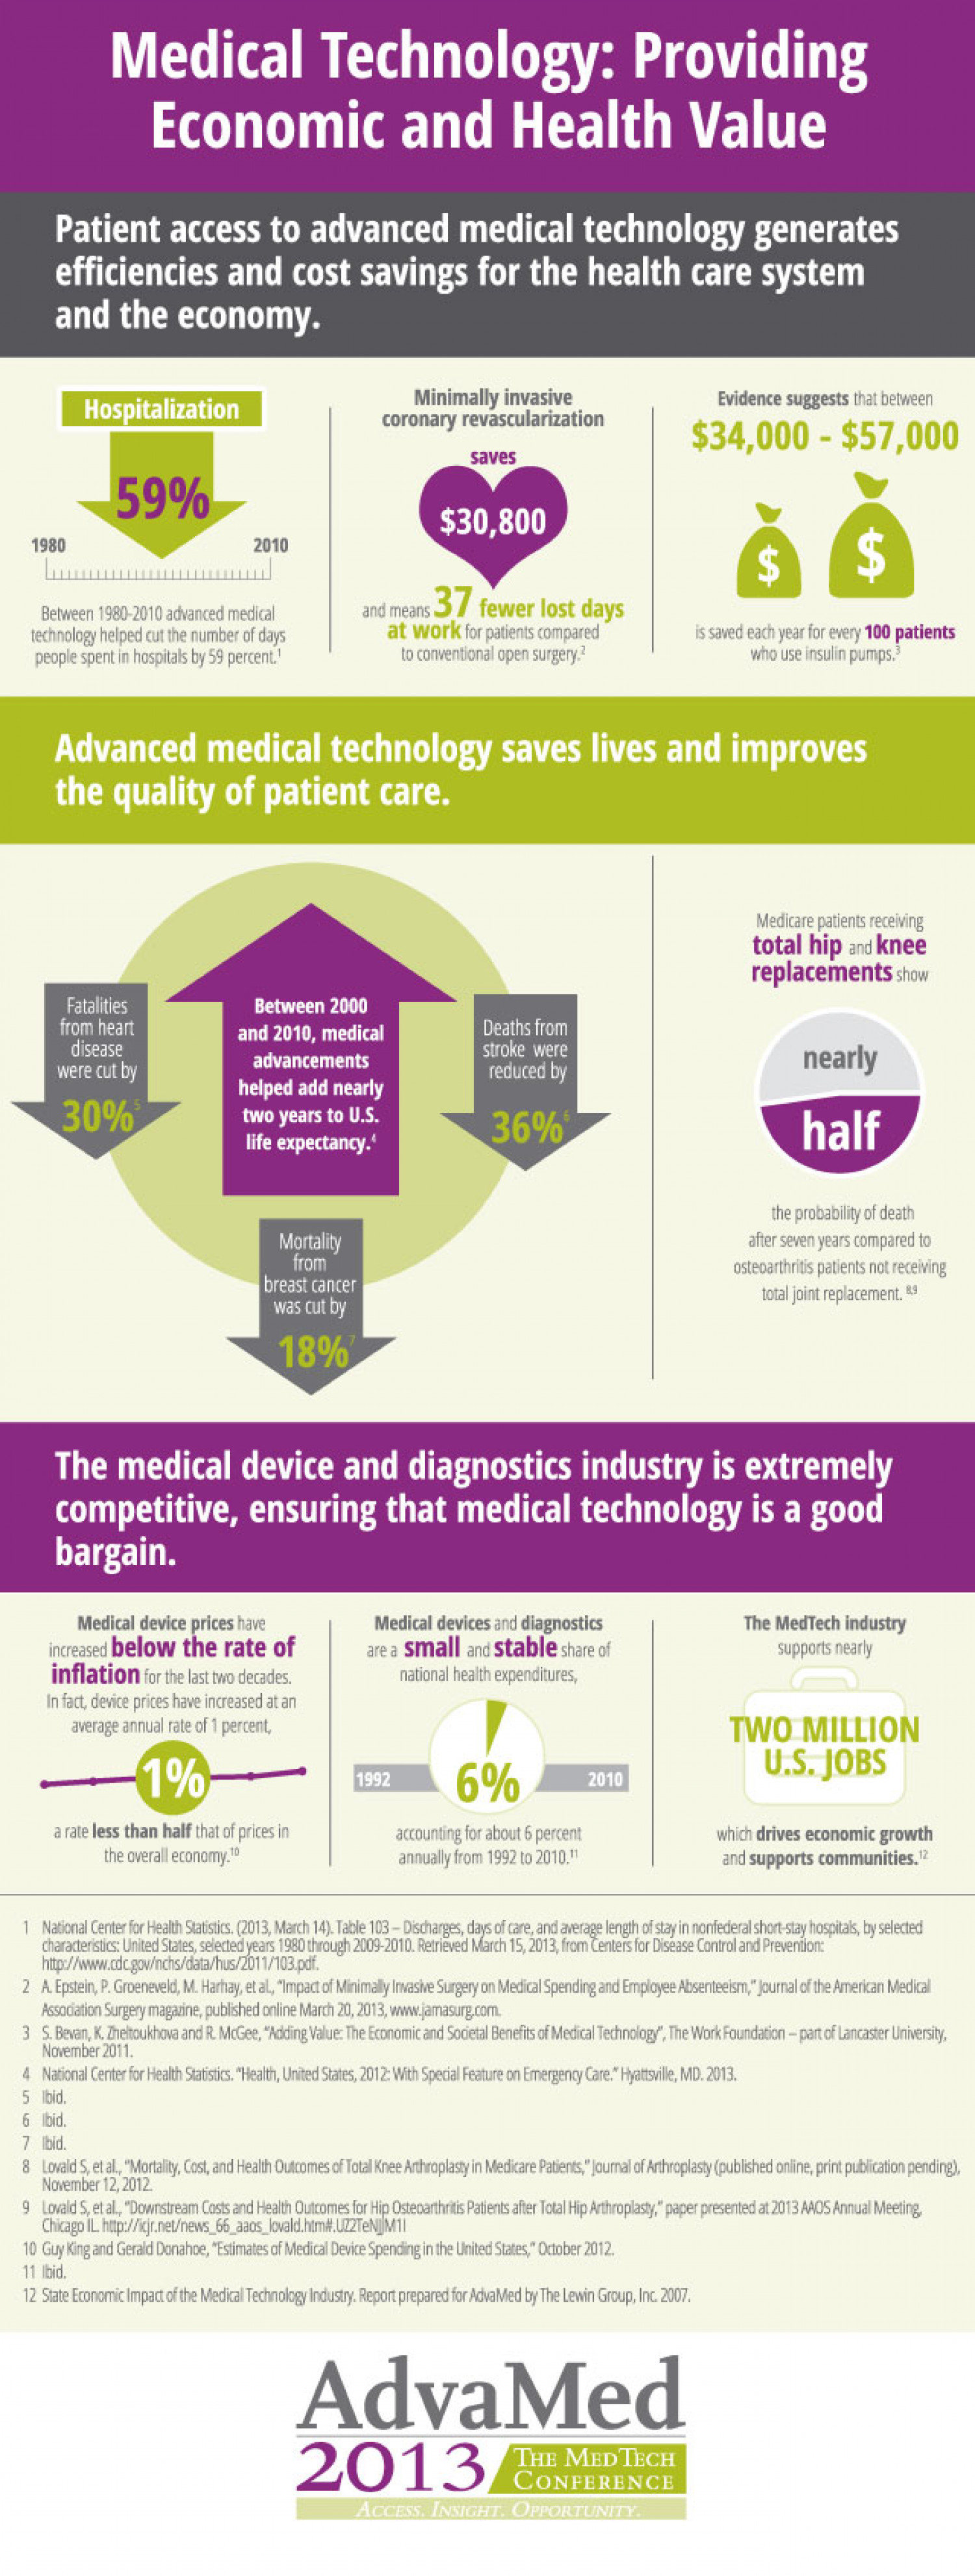 Medical Technology: Providing Economic and Health Value Infographic